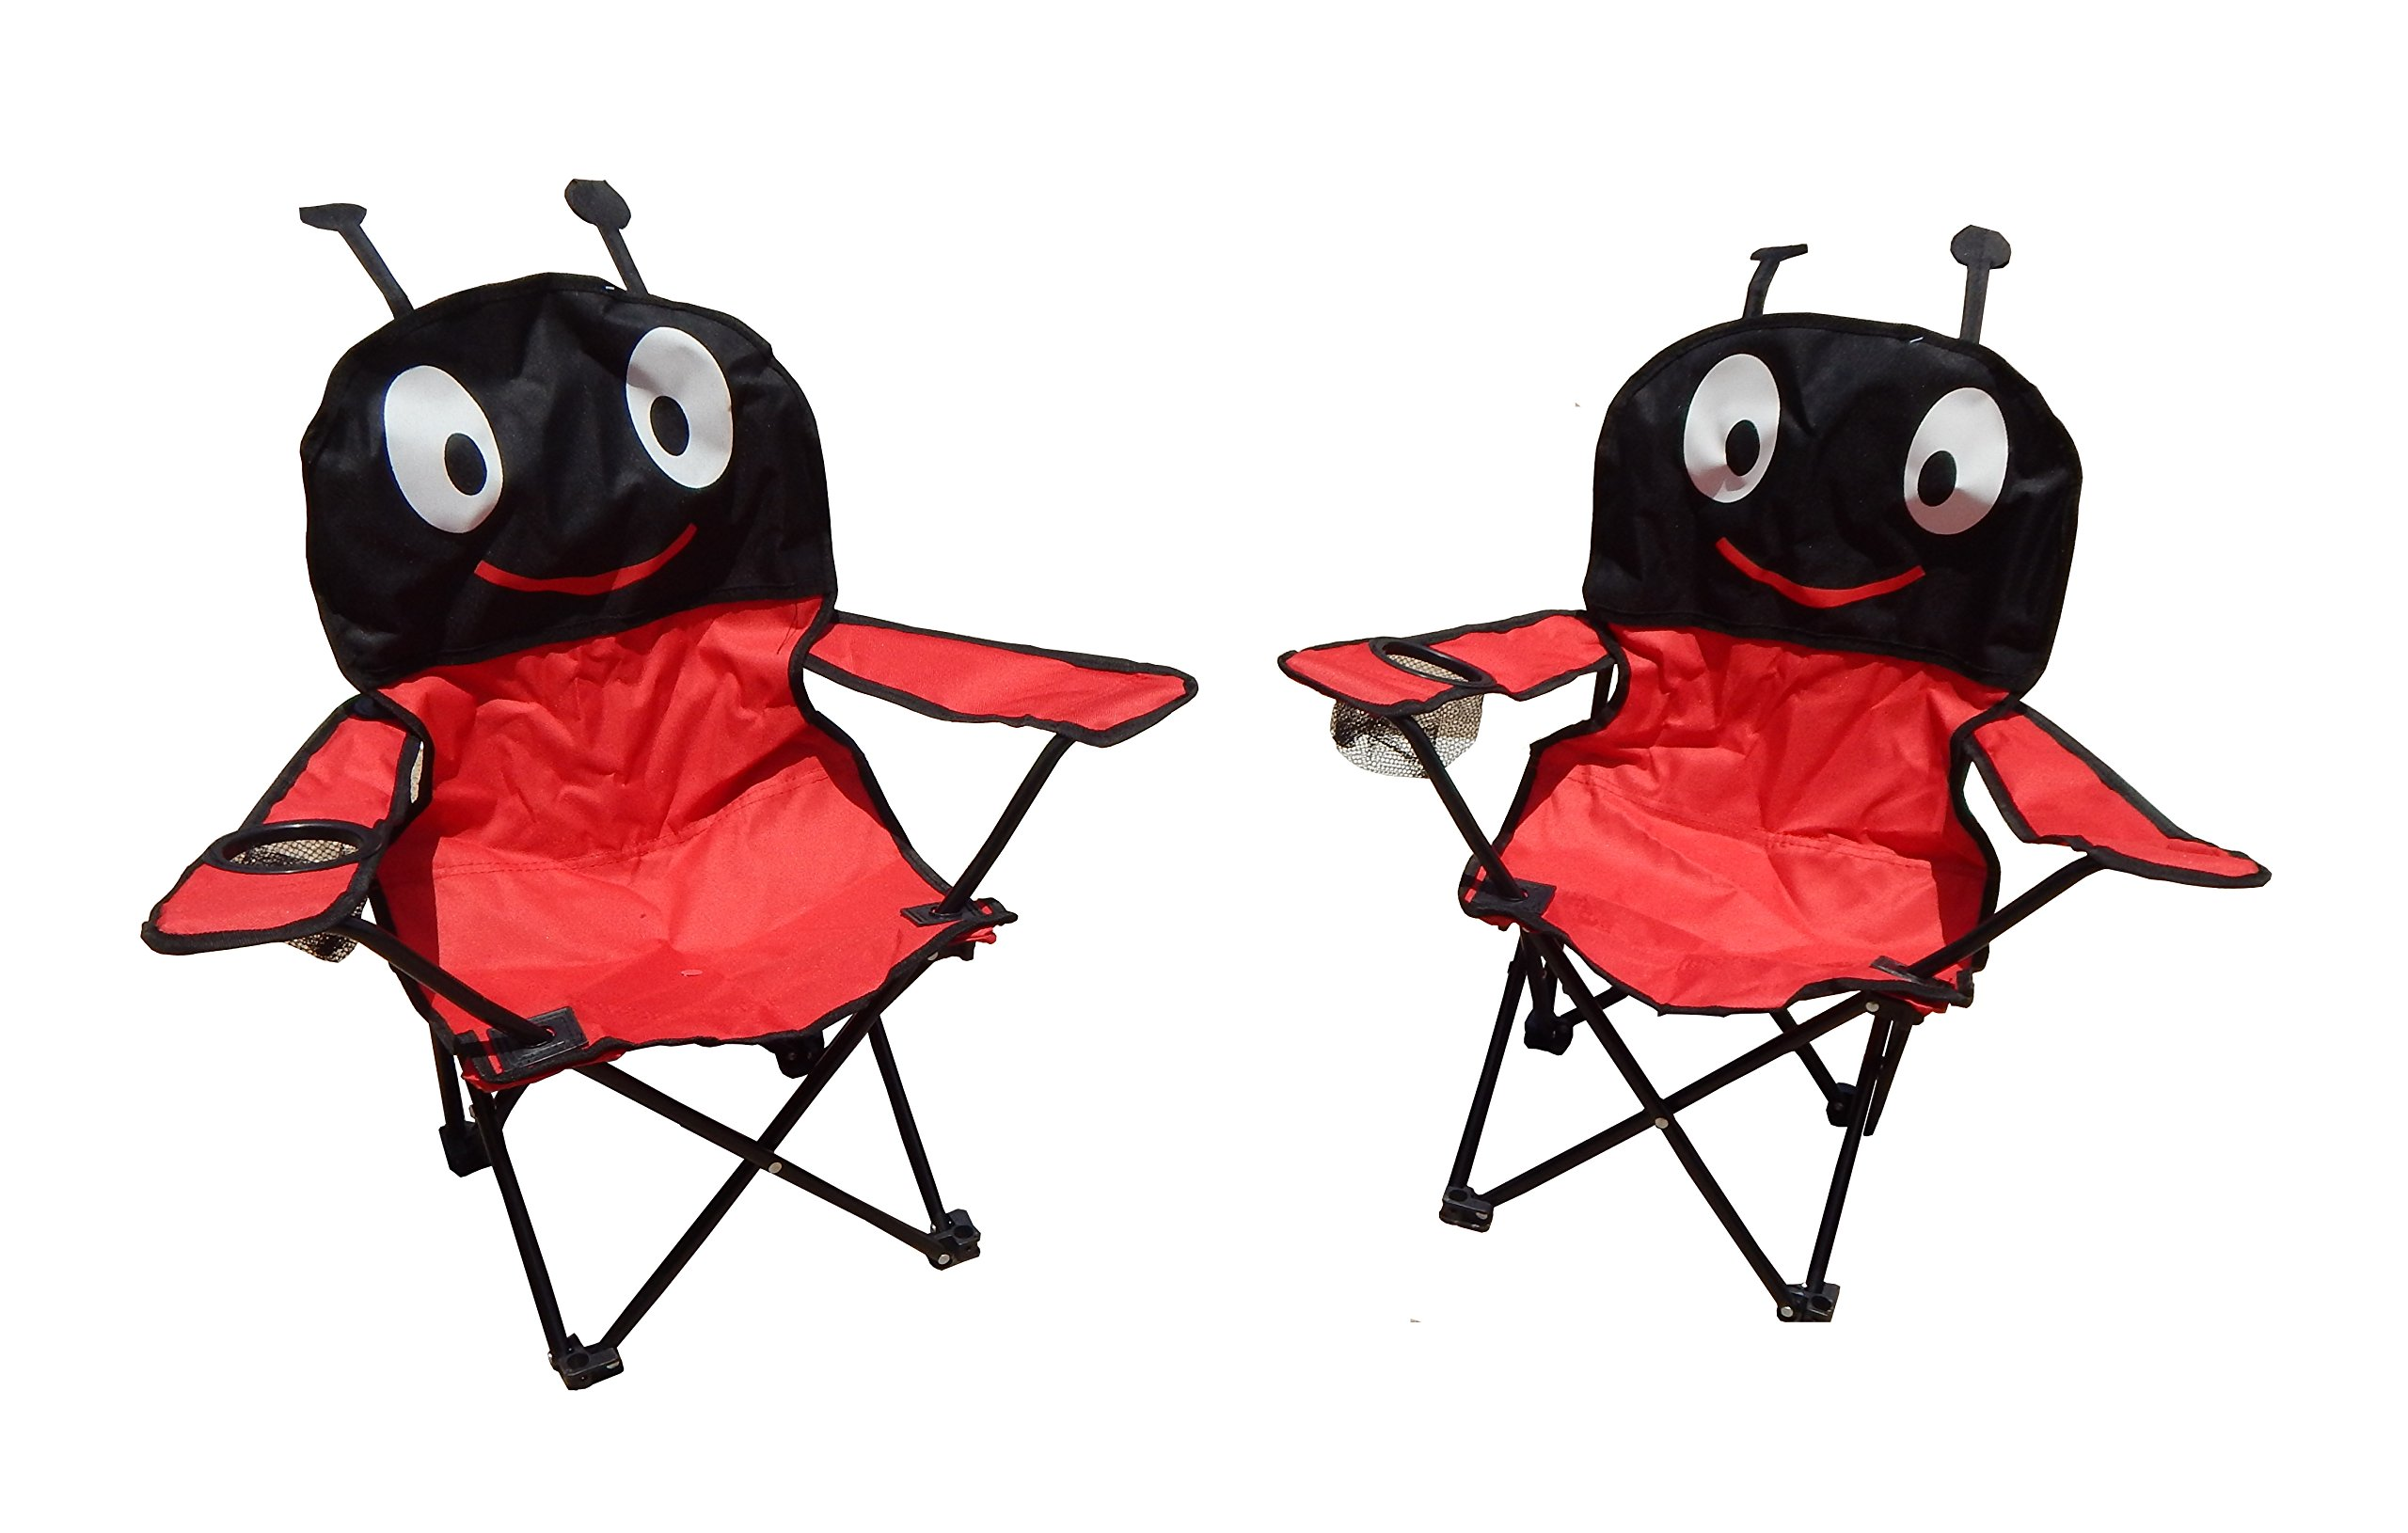 Folding Kids Camping Chairs in Animal Designs by J&Y Home & Garden (Set of 2) by MAOS (Image #1)